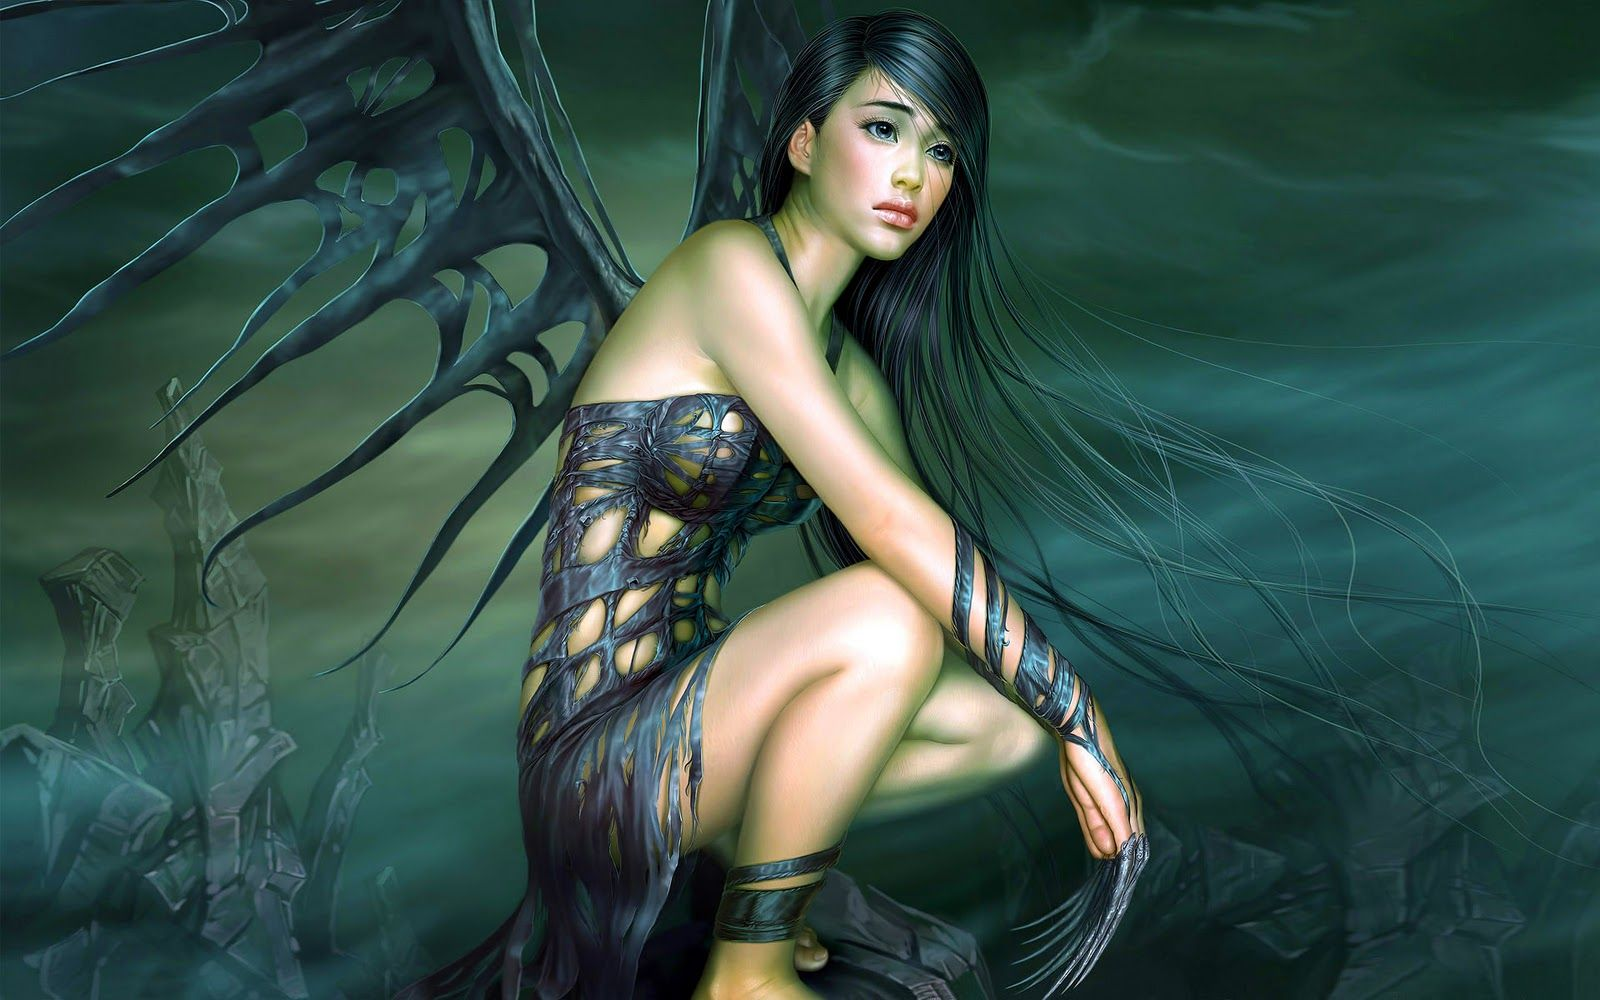 Scary Gothic Wallpaper Free Celebrity Wallpapers Bananas